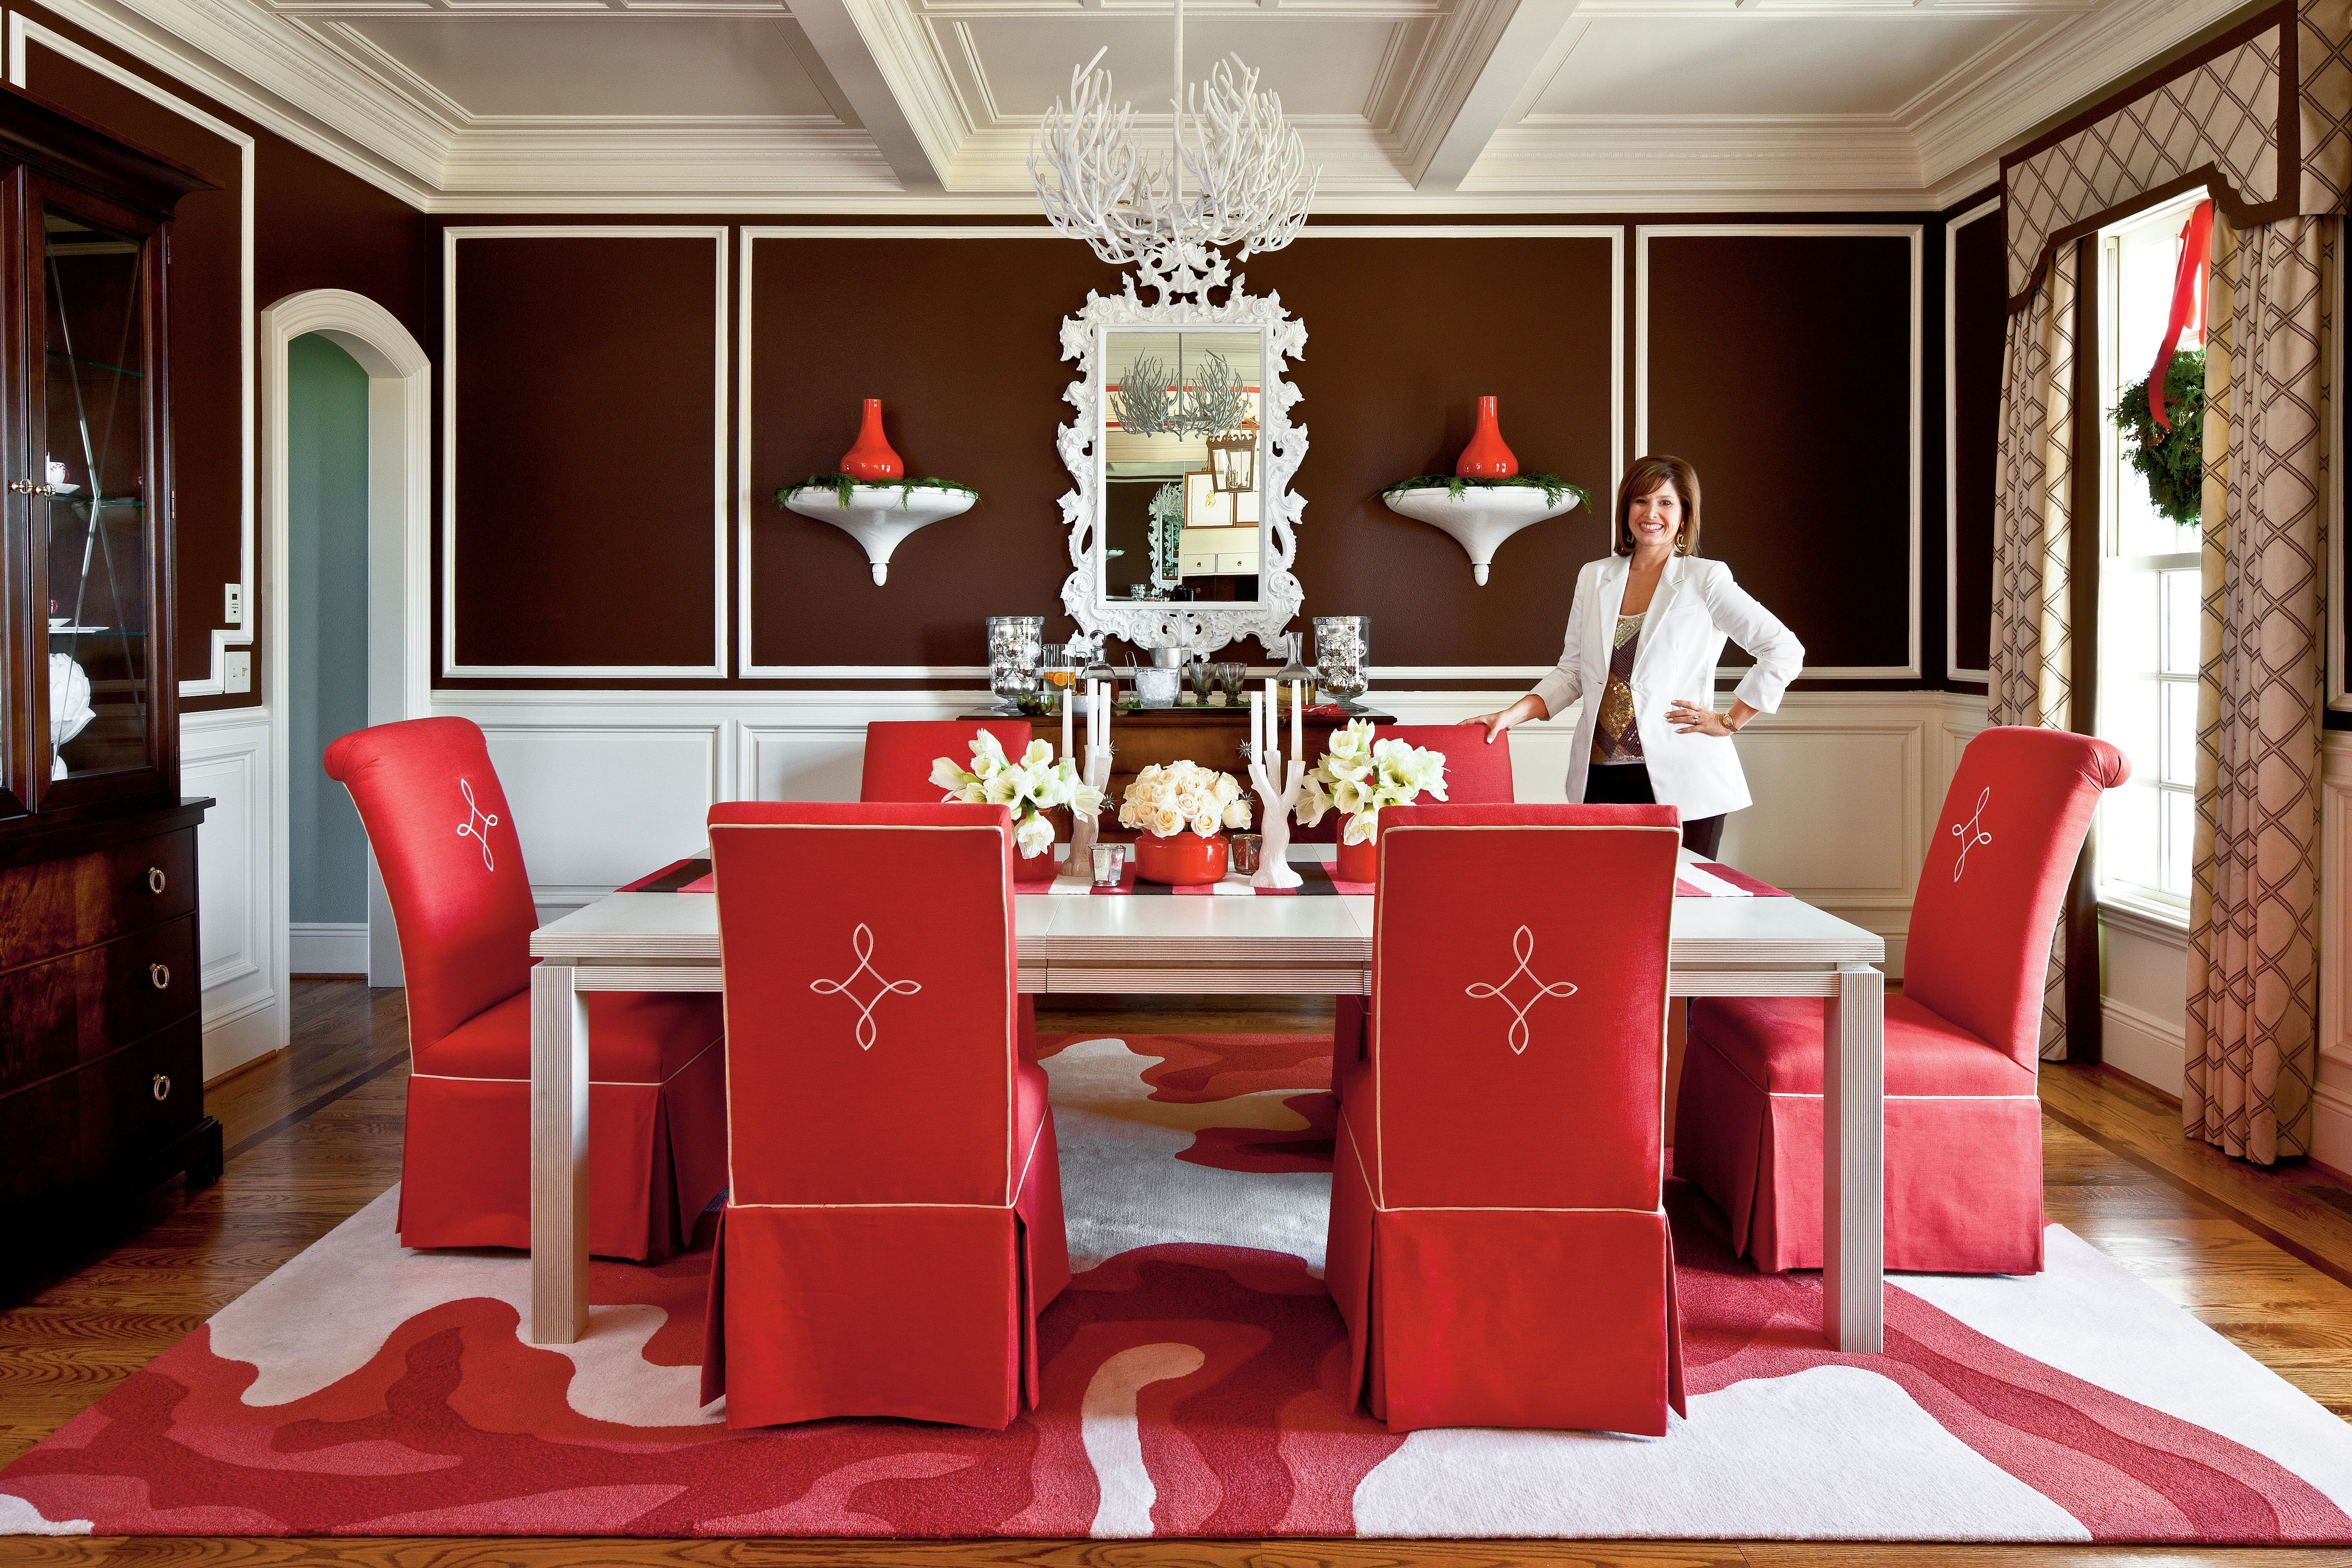 5 Rules for Creating an Appetizing Dining Room